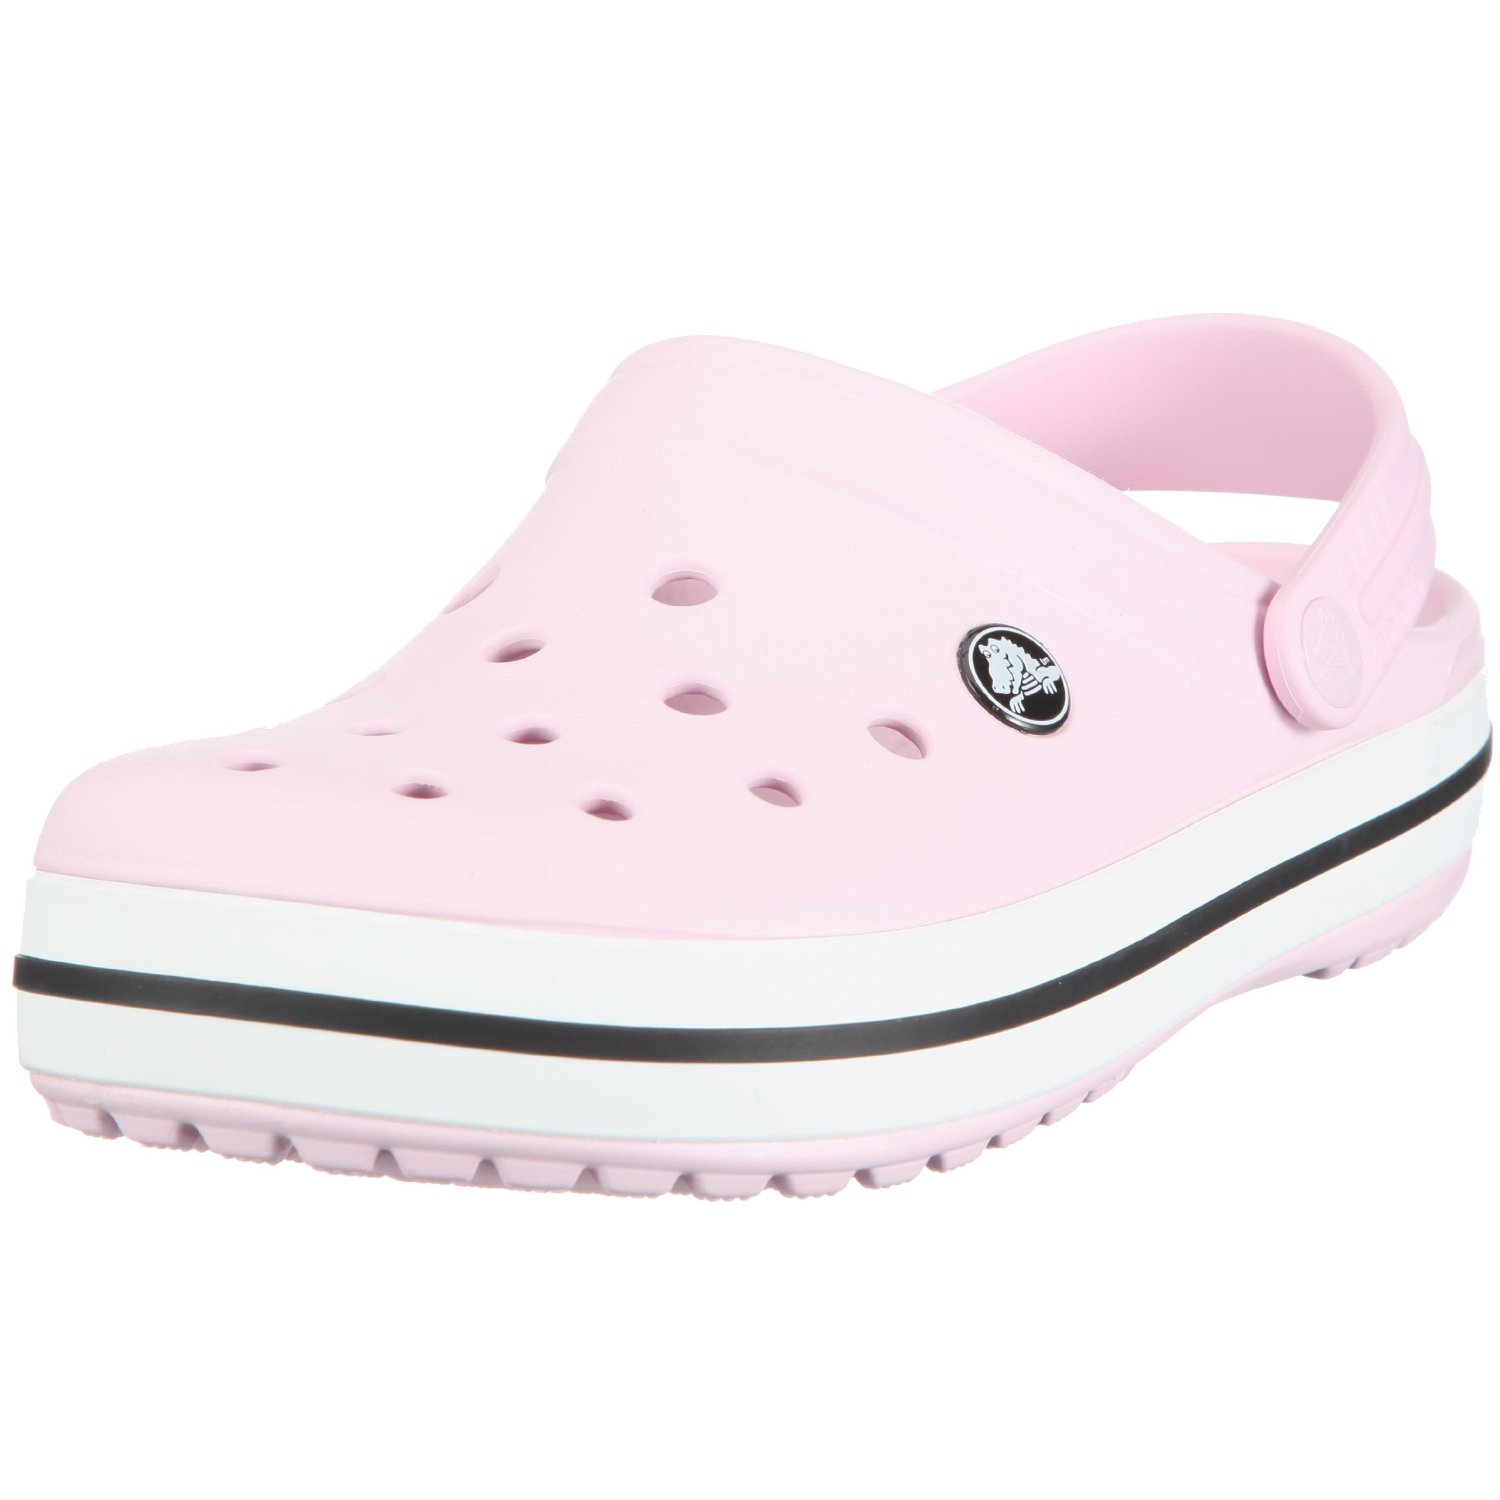 6ce1cba1d232a The versatile use of the material has enabled Crocs to successfully market  its products to a broad range of consumers.